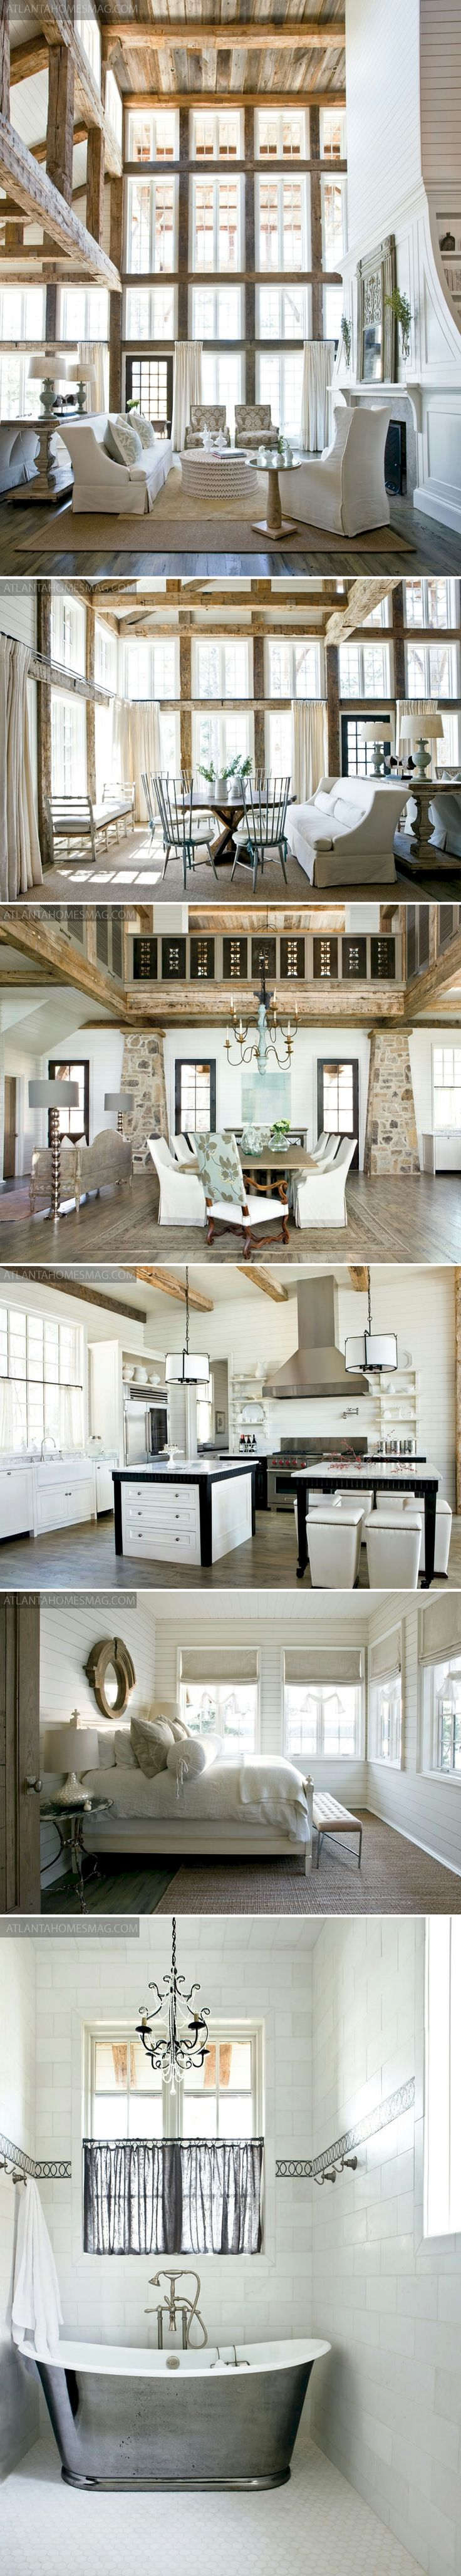 Lake House on the shores of Lake Martin, Alabama, by designer Paige Sumblin Schnell for Tracery Interiors